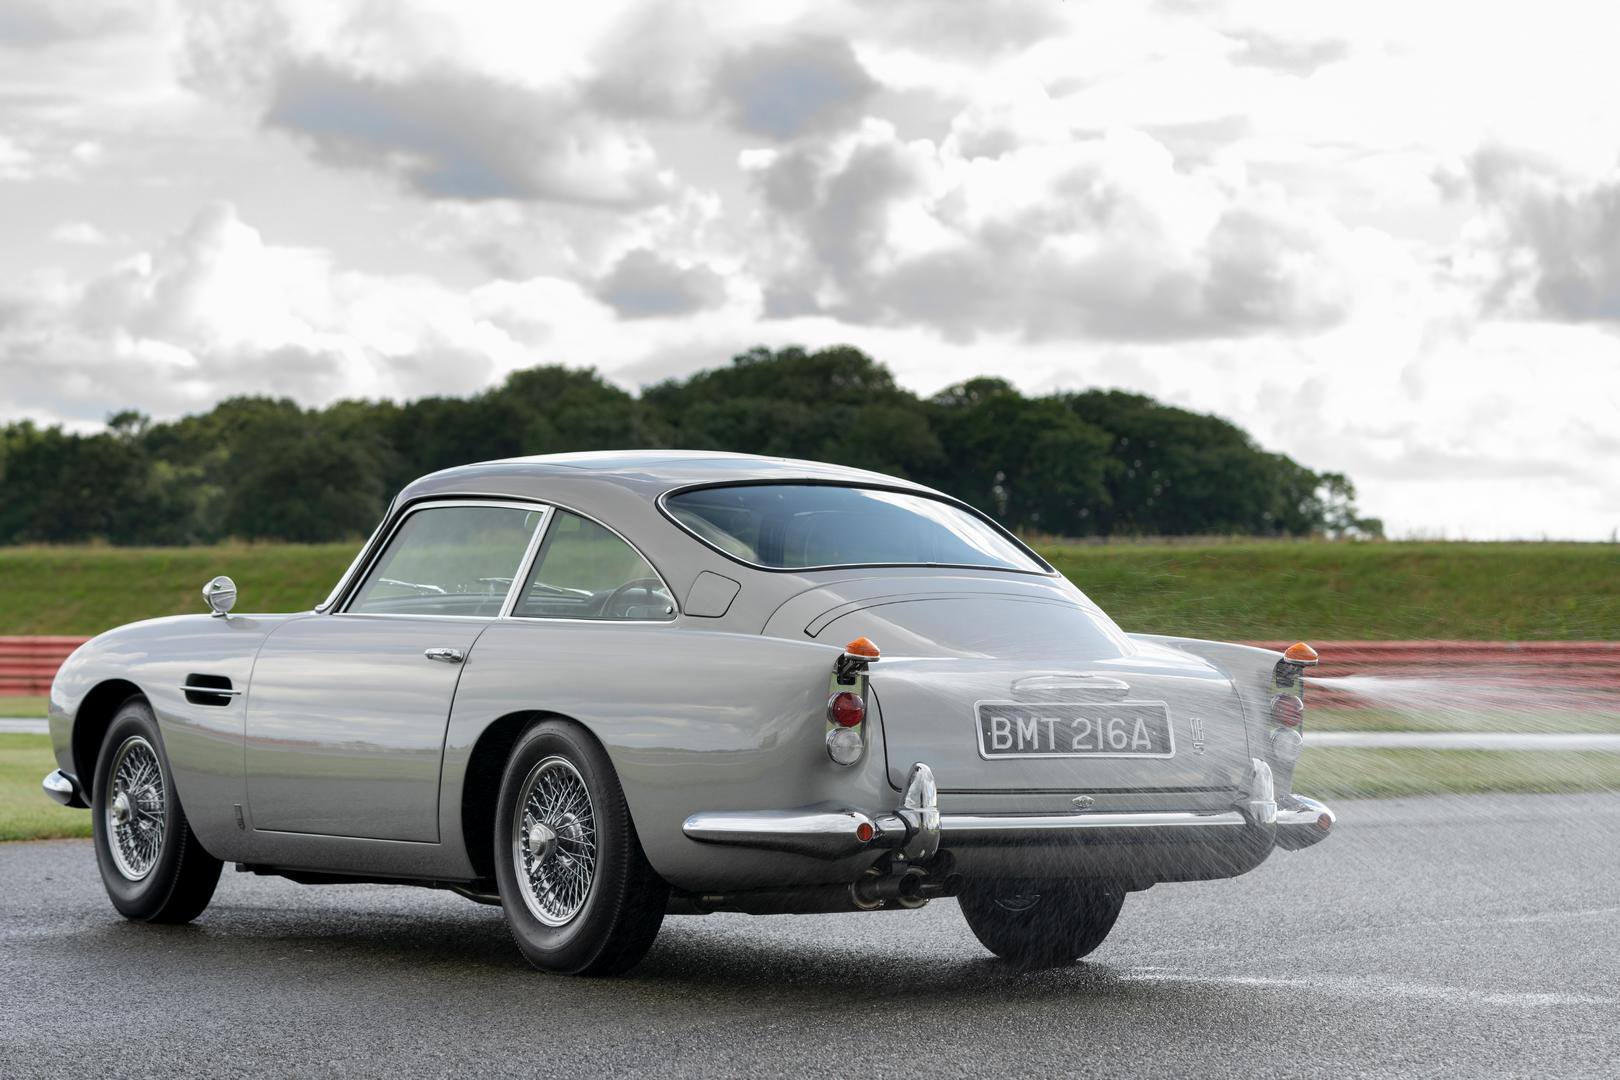 Aston Martin DB5 Rear